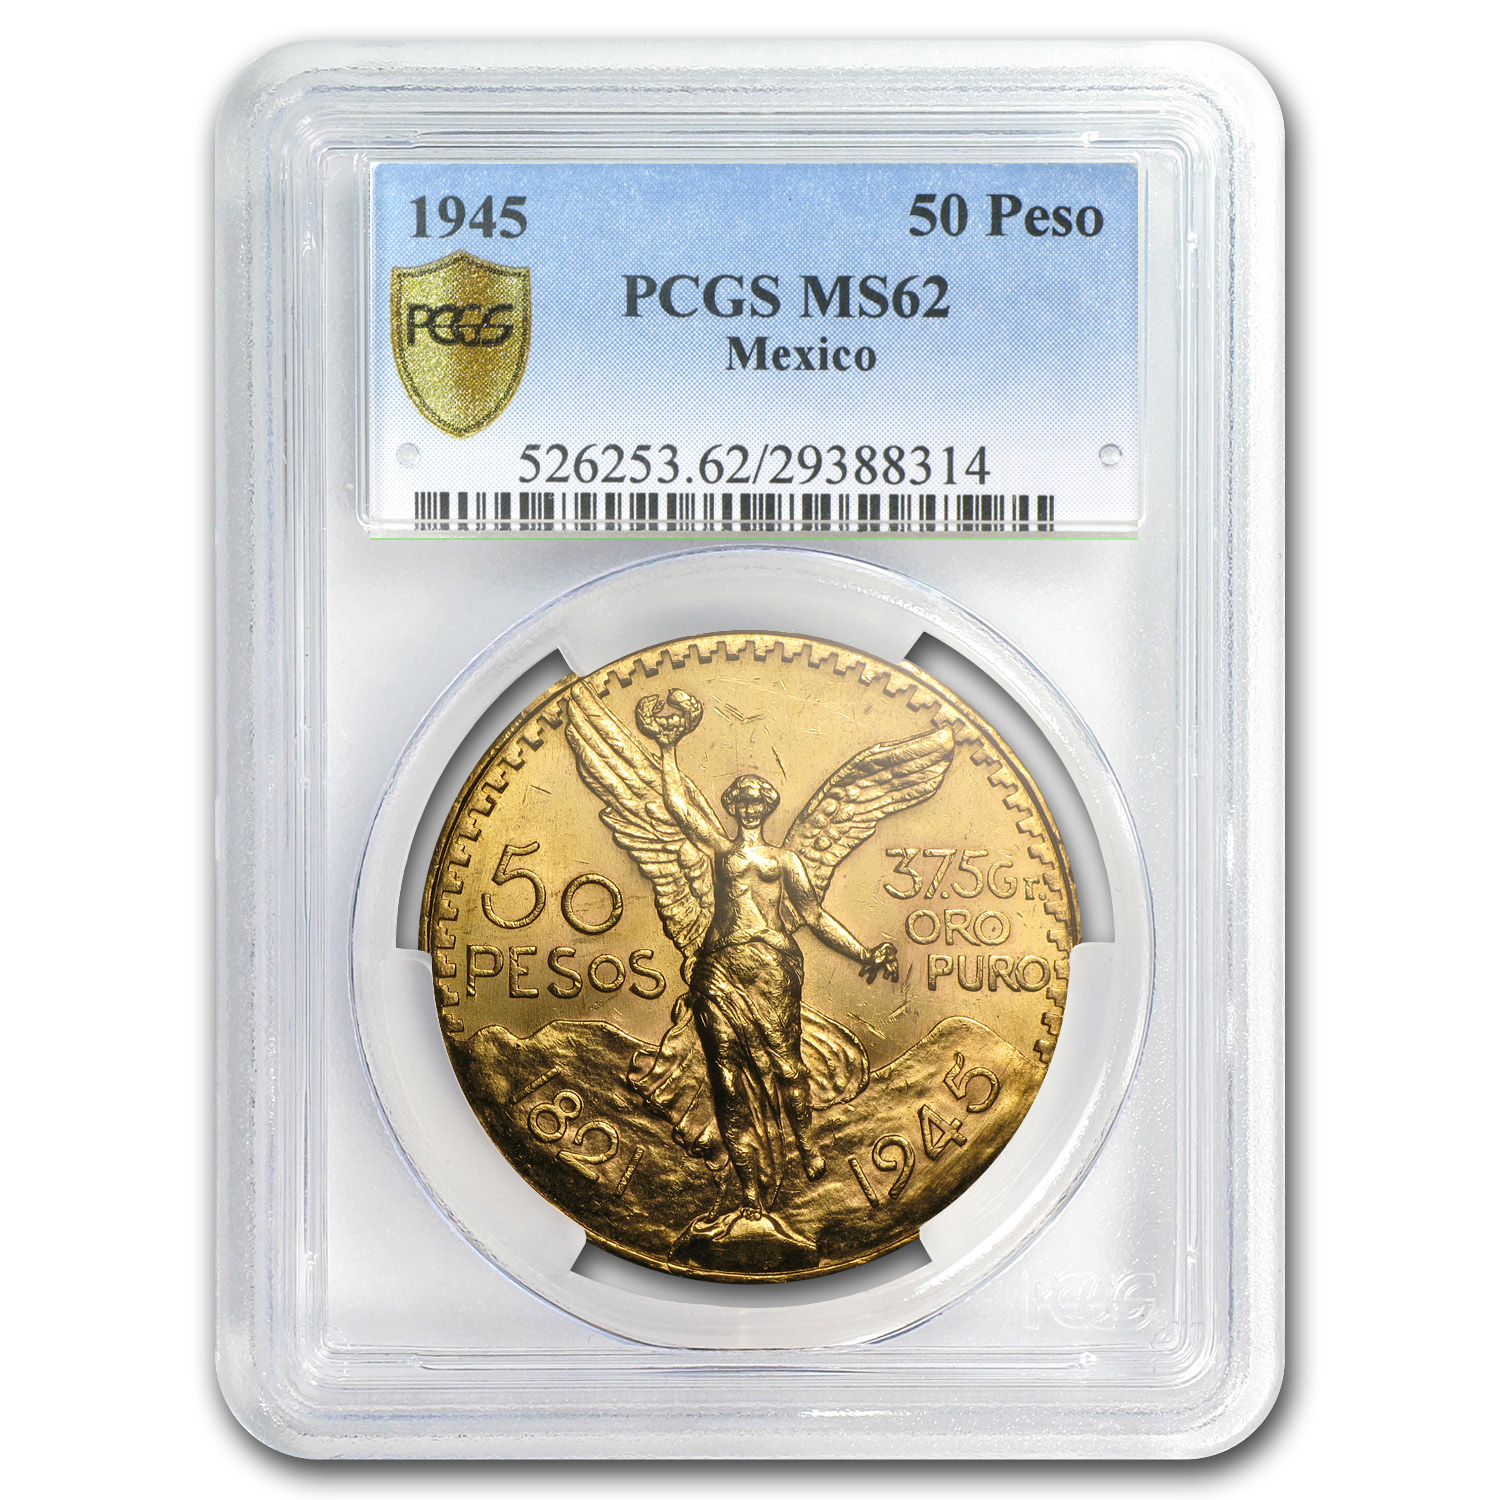 Mexico 1945 50 Pesos Gold Coin - MS-62 PCGS (Secure Plus!)